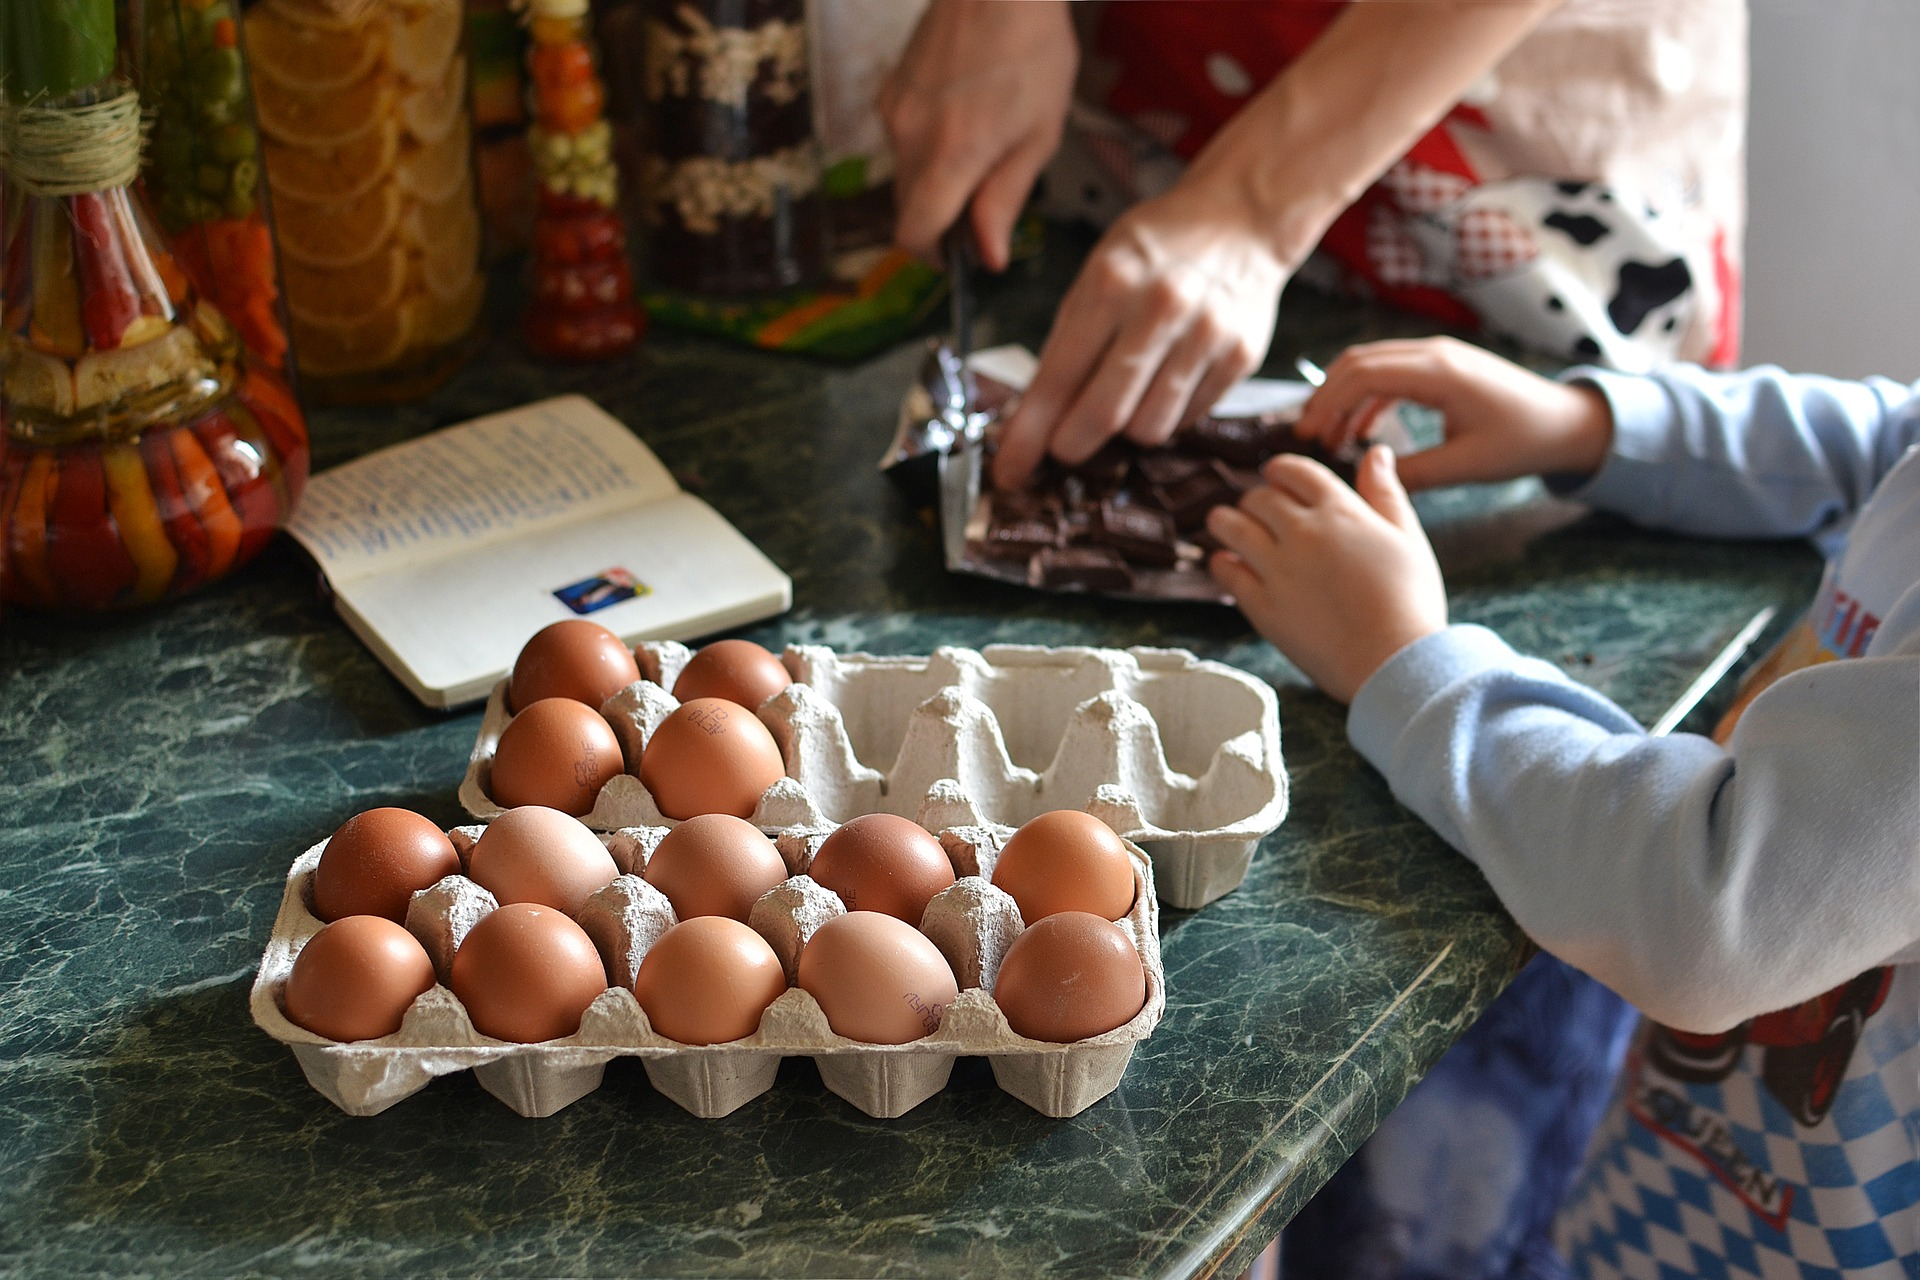 It's crazy how much we actually use eggs. We can cook and bake with them